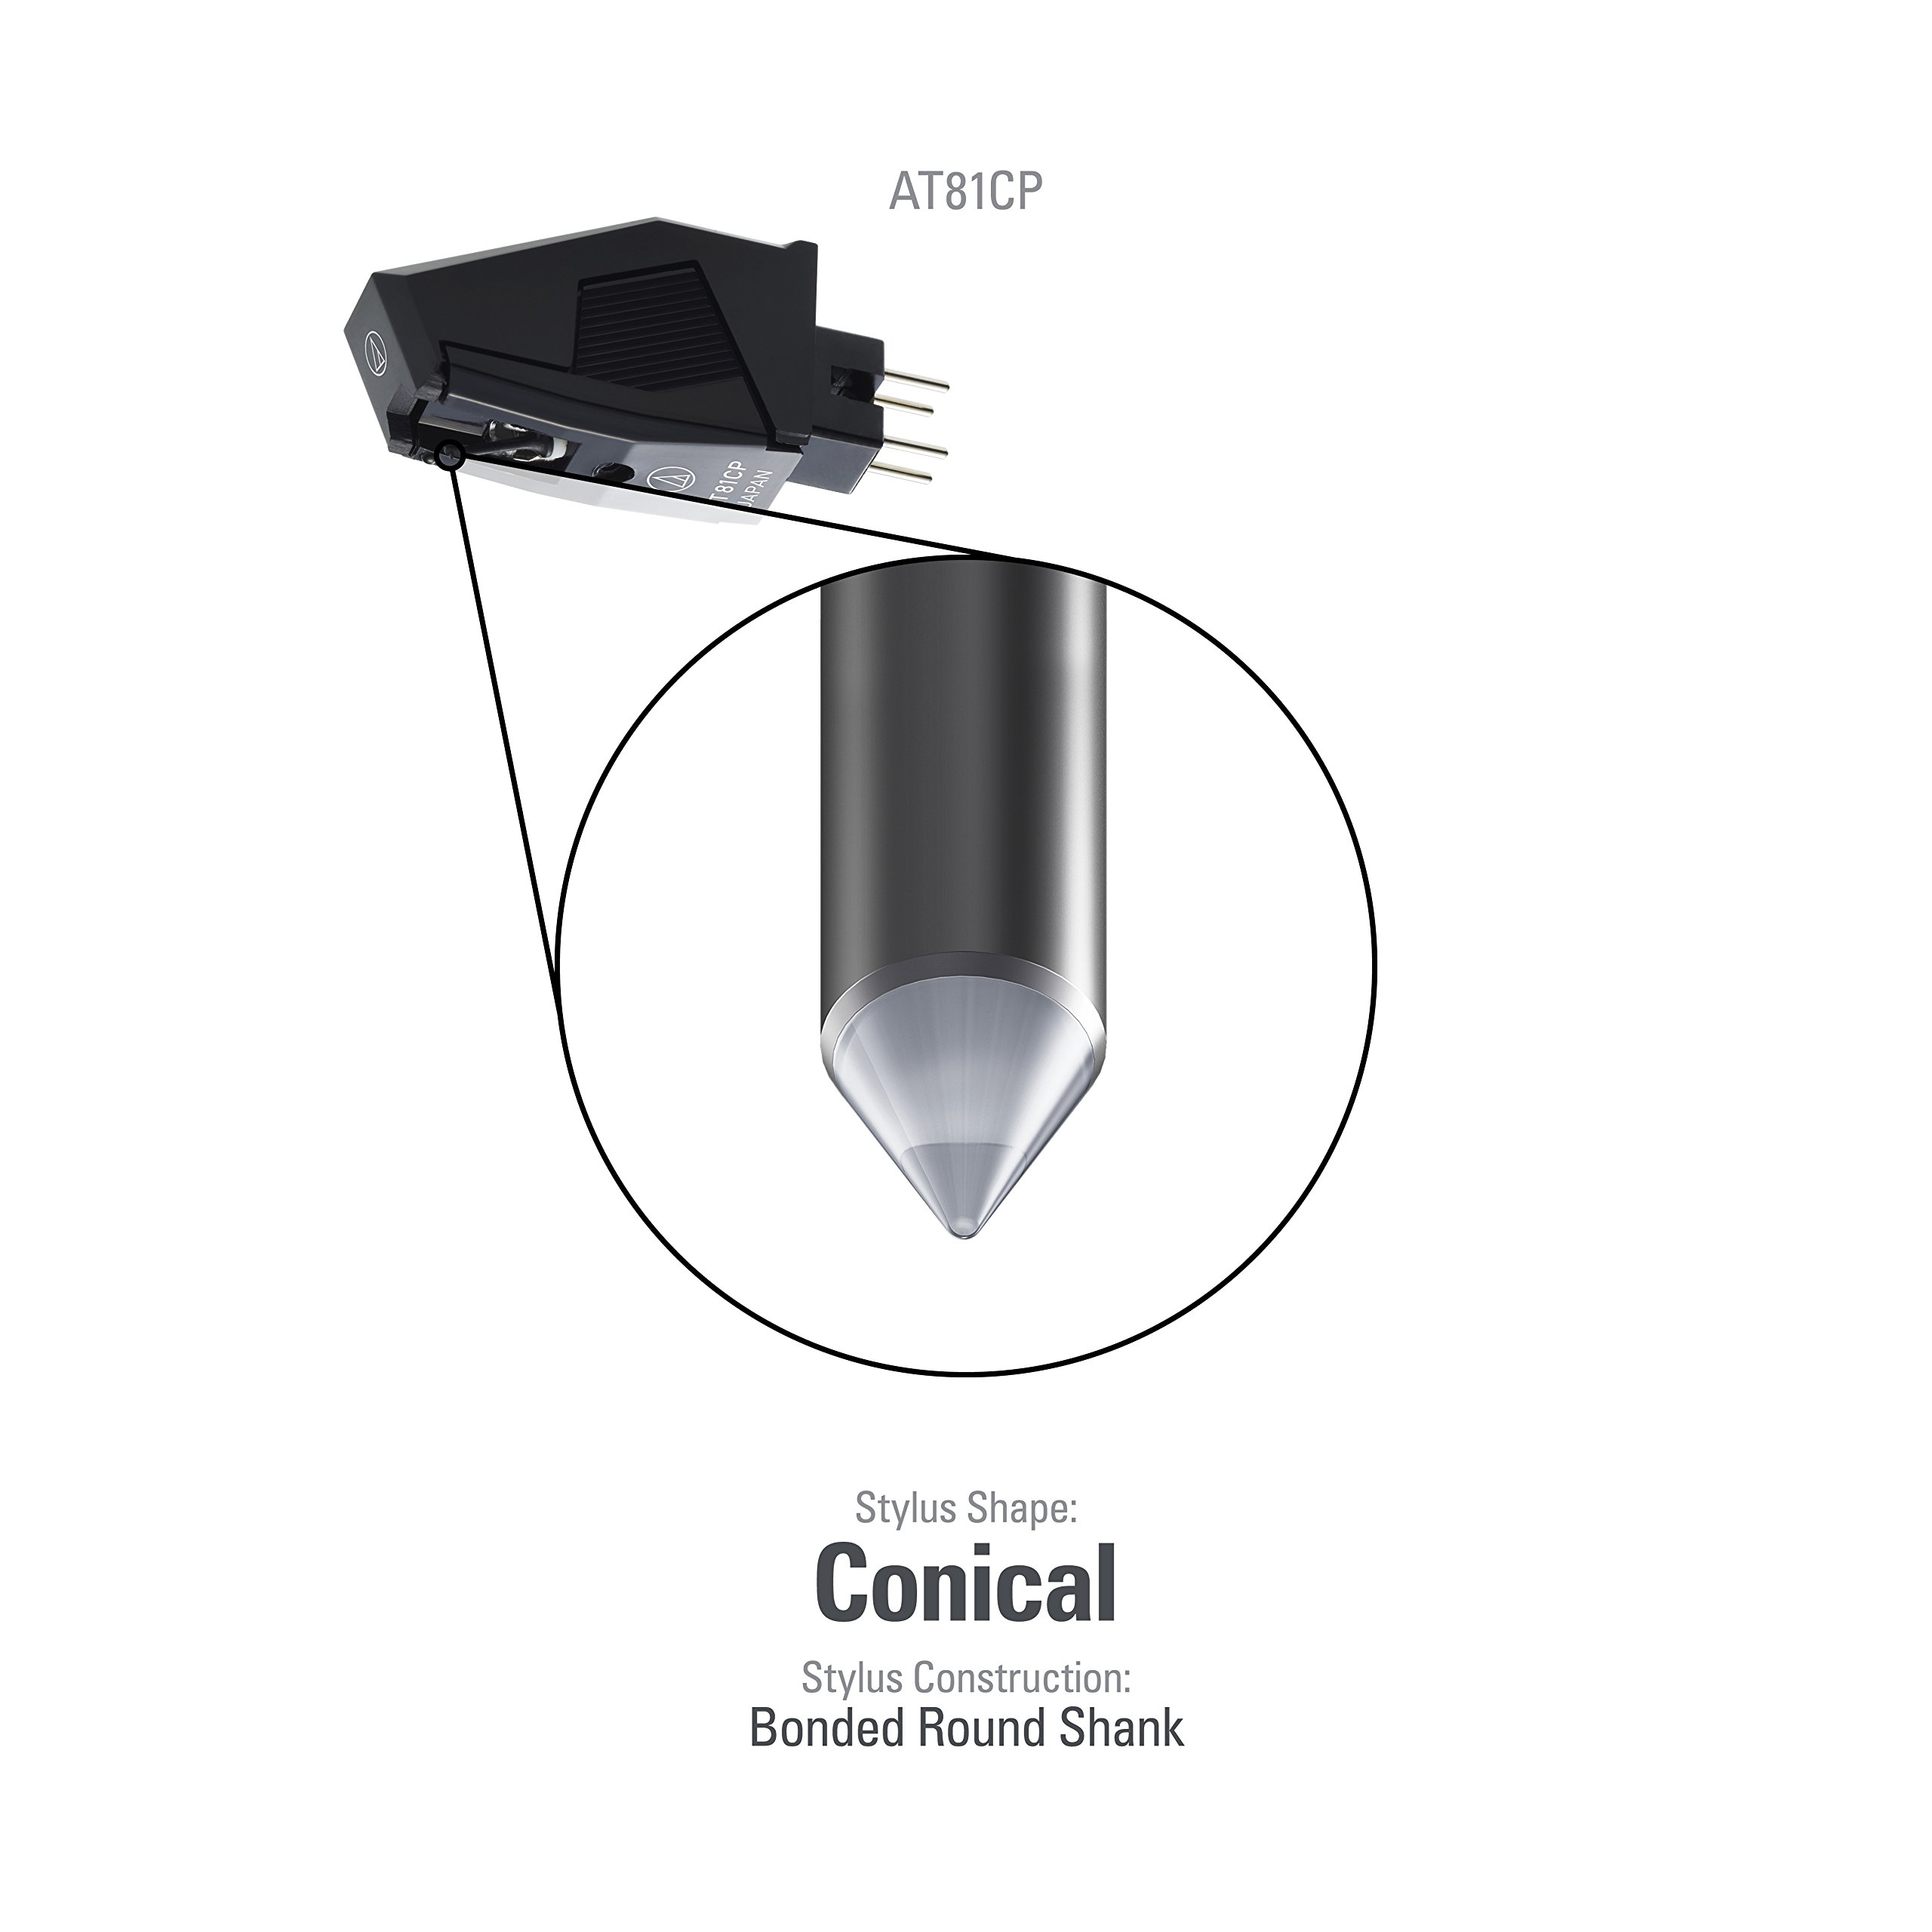 Audio-Technica AT81CP Replacement Phonograph Cartridge with Conical Stylus for P Mount Turntables by Audio-Technica